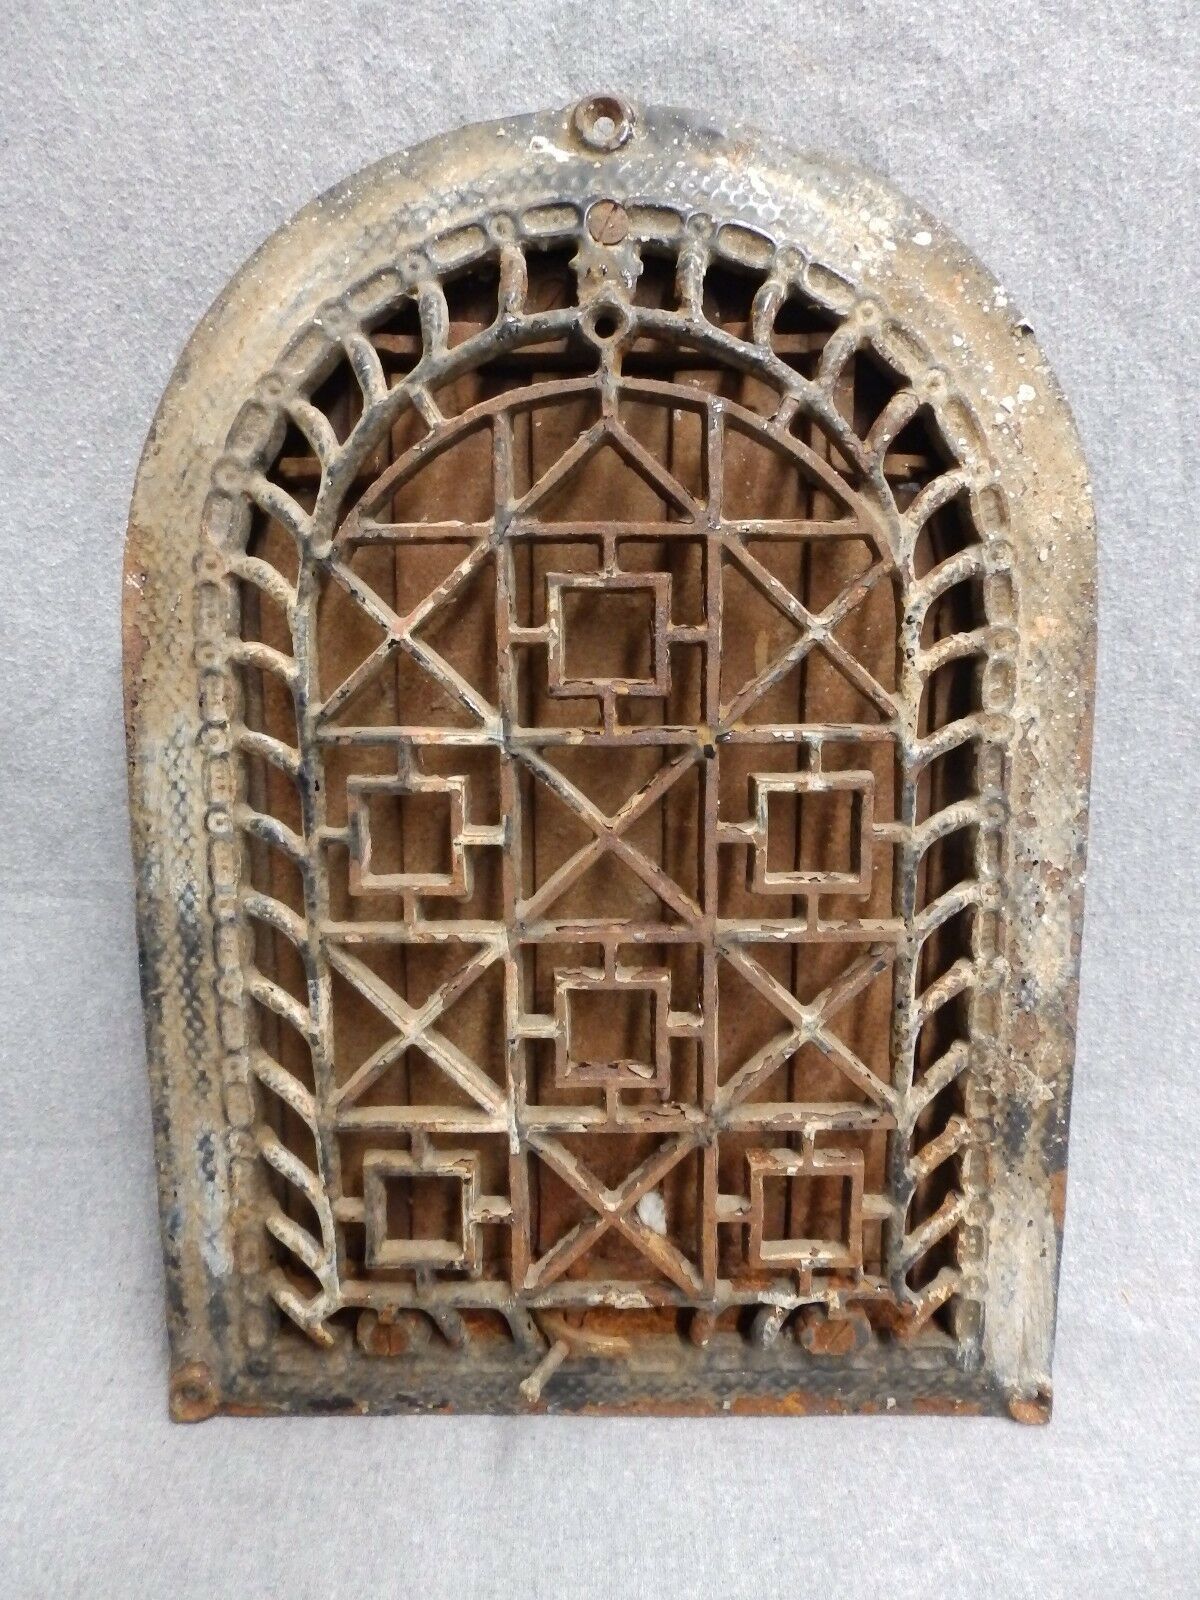 Antique Arch Top Dome Heat Grate Wall Register Vent Old Vintage Hardware 5204-15